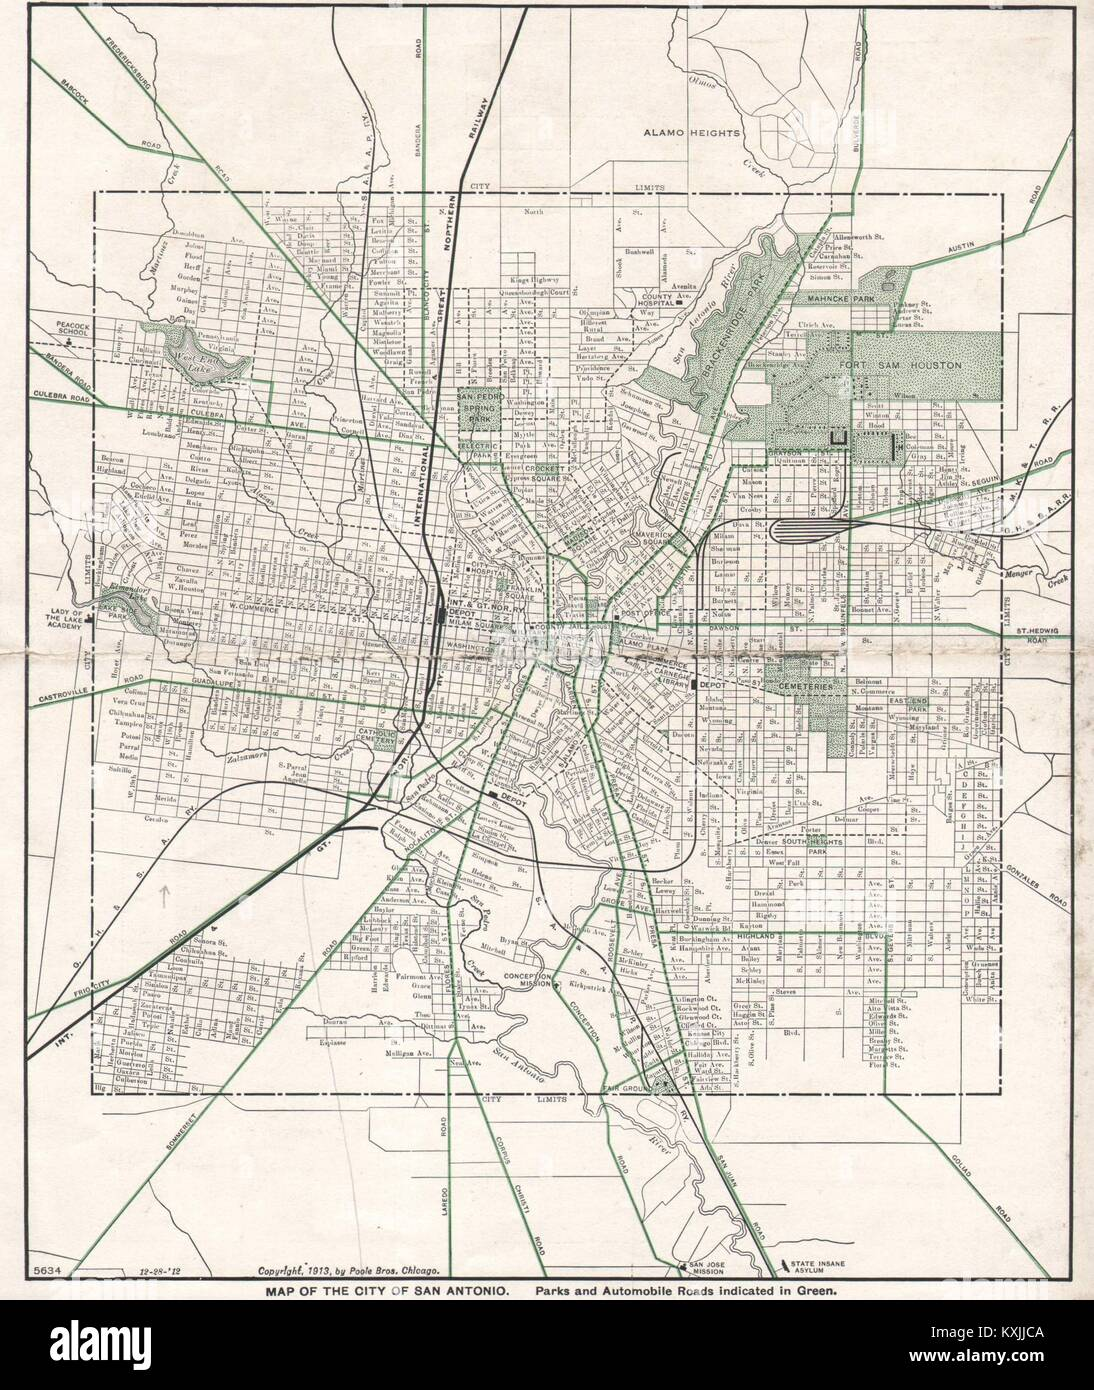 Map Of Texas Railroads.San Antonio Town City Map Plan Texas Railroads Poole Bros 1913